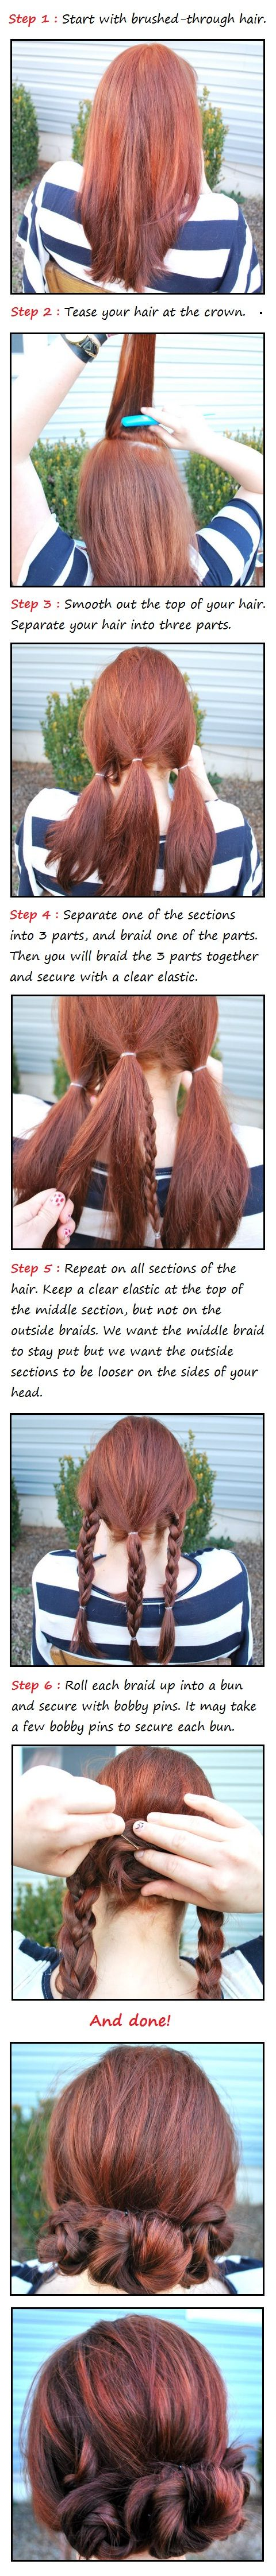 The three Braided Buns Hair Tutorial | Beauty Tutorials - Super cute, but I hope I can pull off the front of my hair looking right.